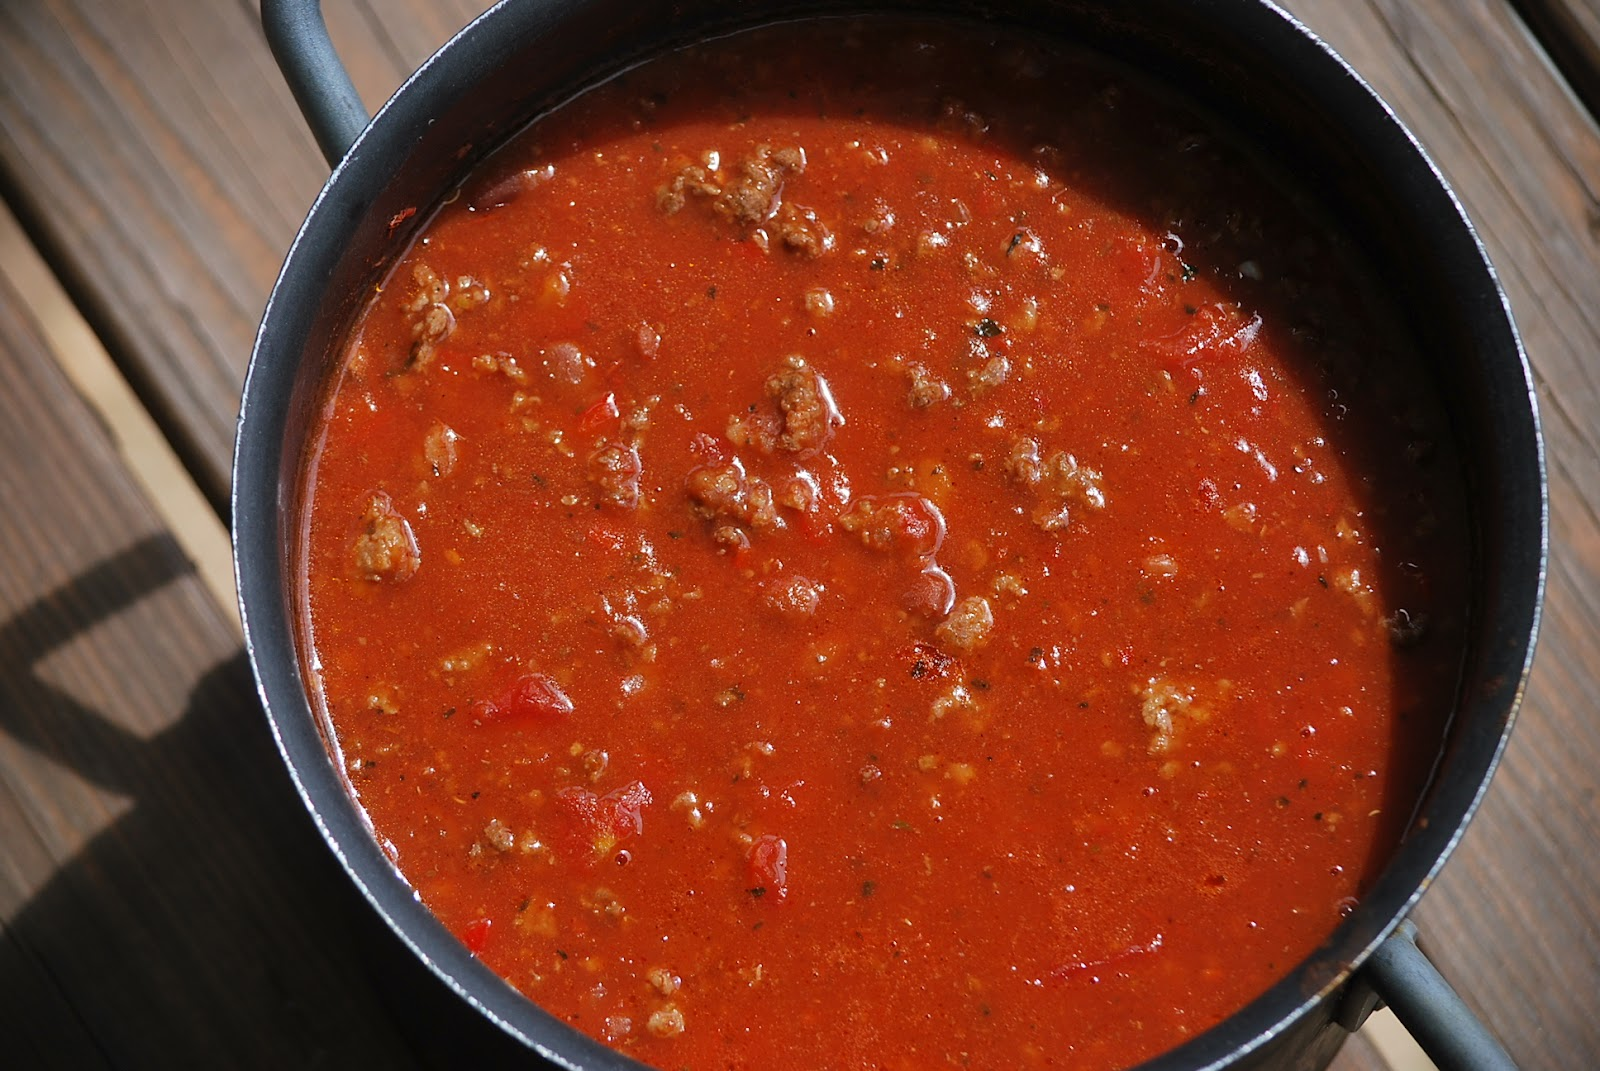 My story in recipes: Italian Chili